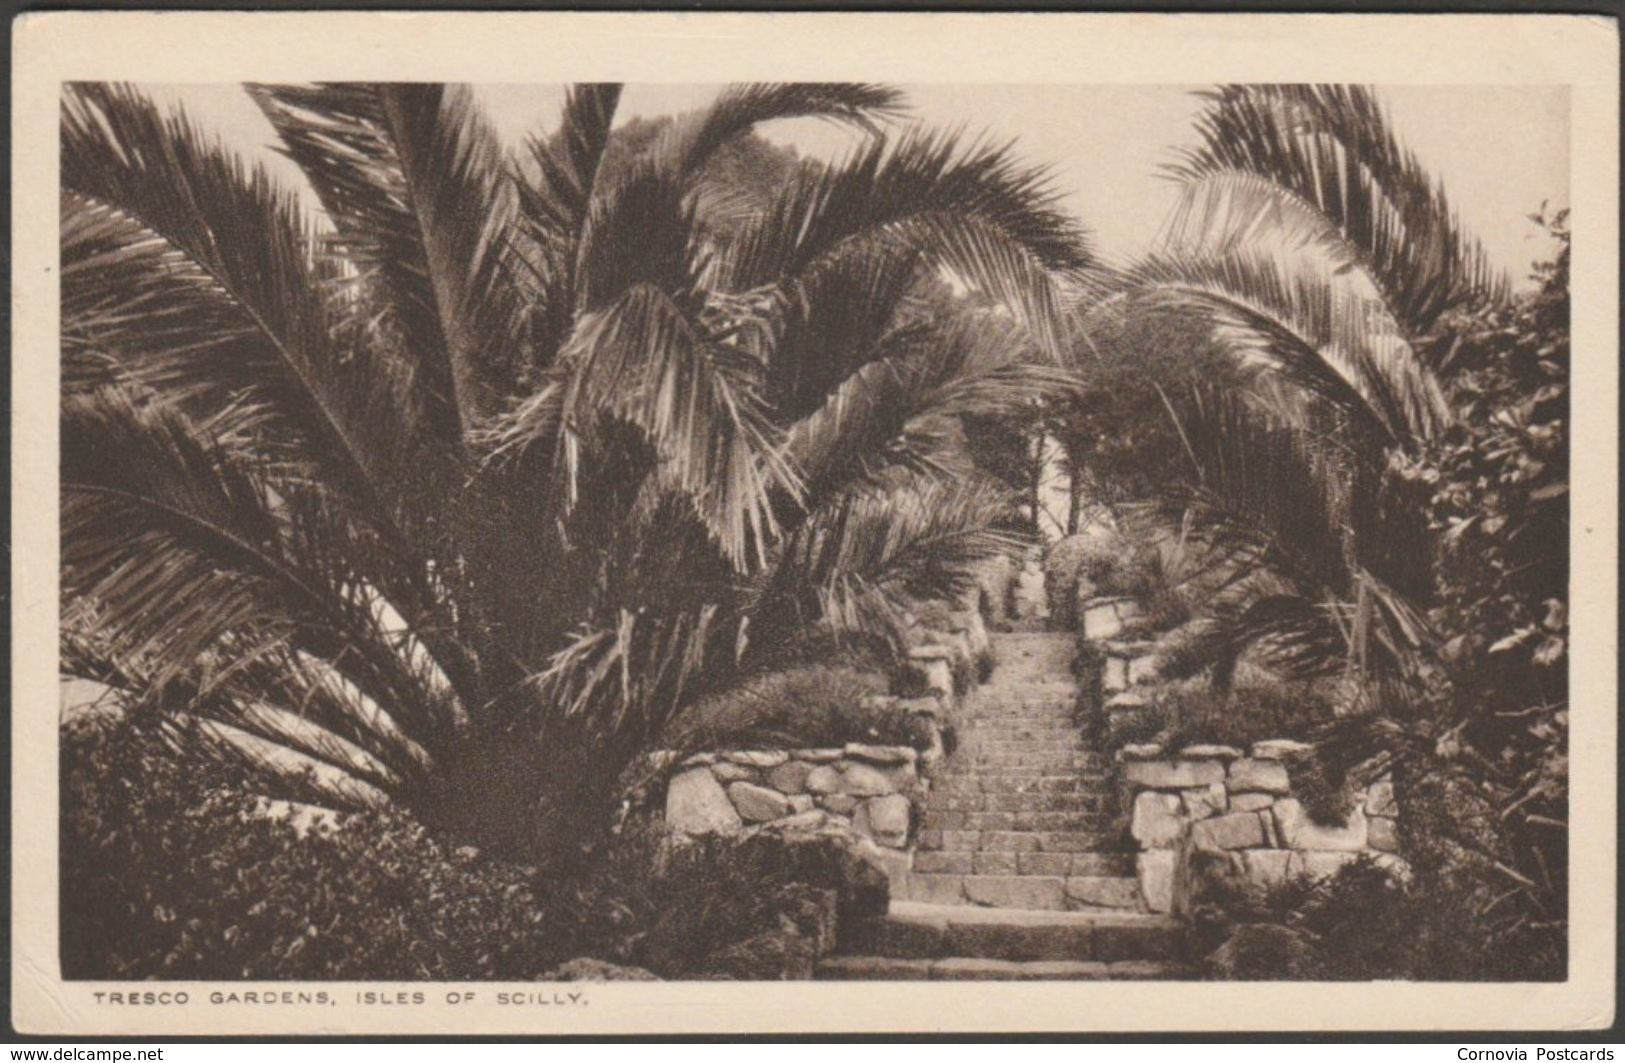 Tresco Gardens, Isles Of Scilly, C.1920s - J I Rogers Postcard - Scilly Isles